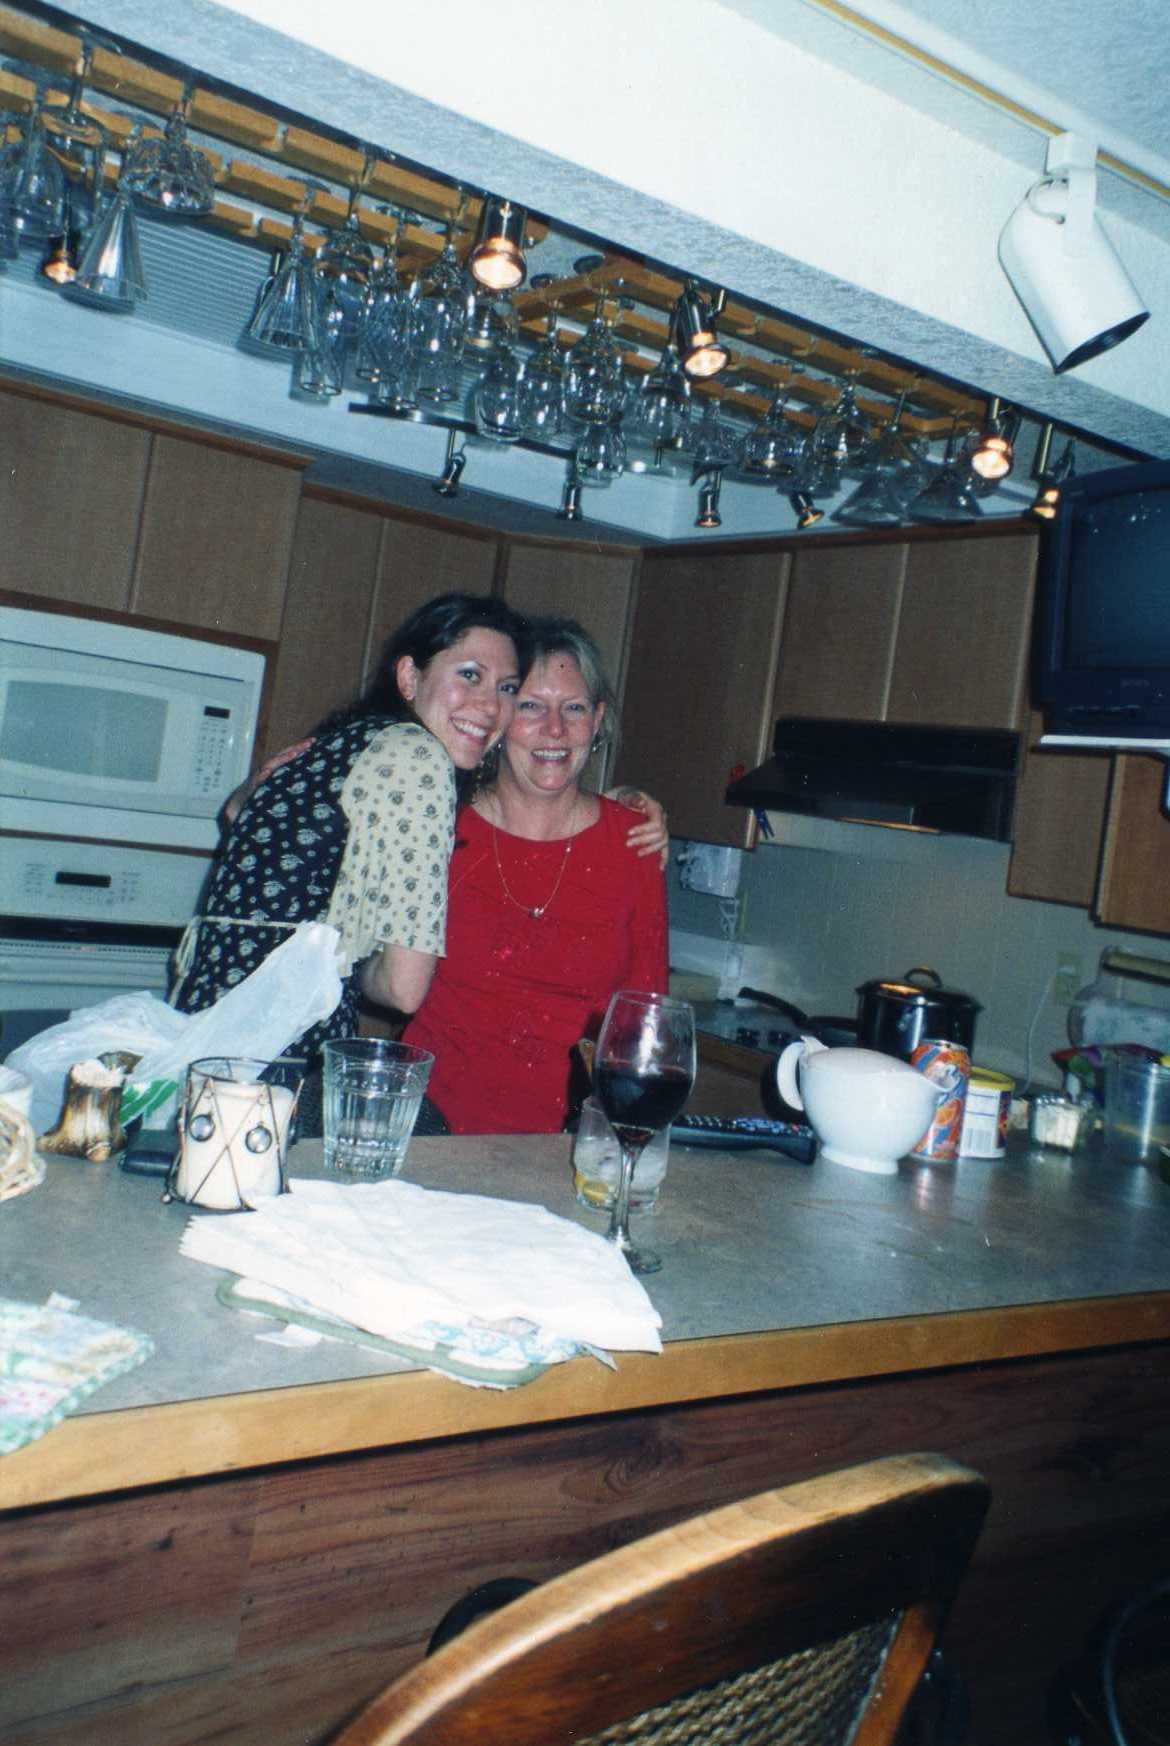 me and mom kitchen